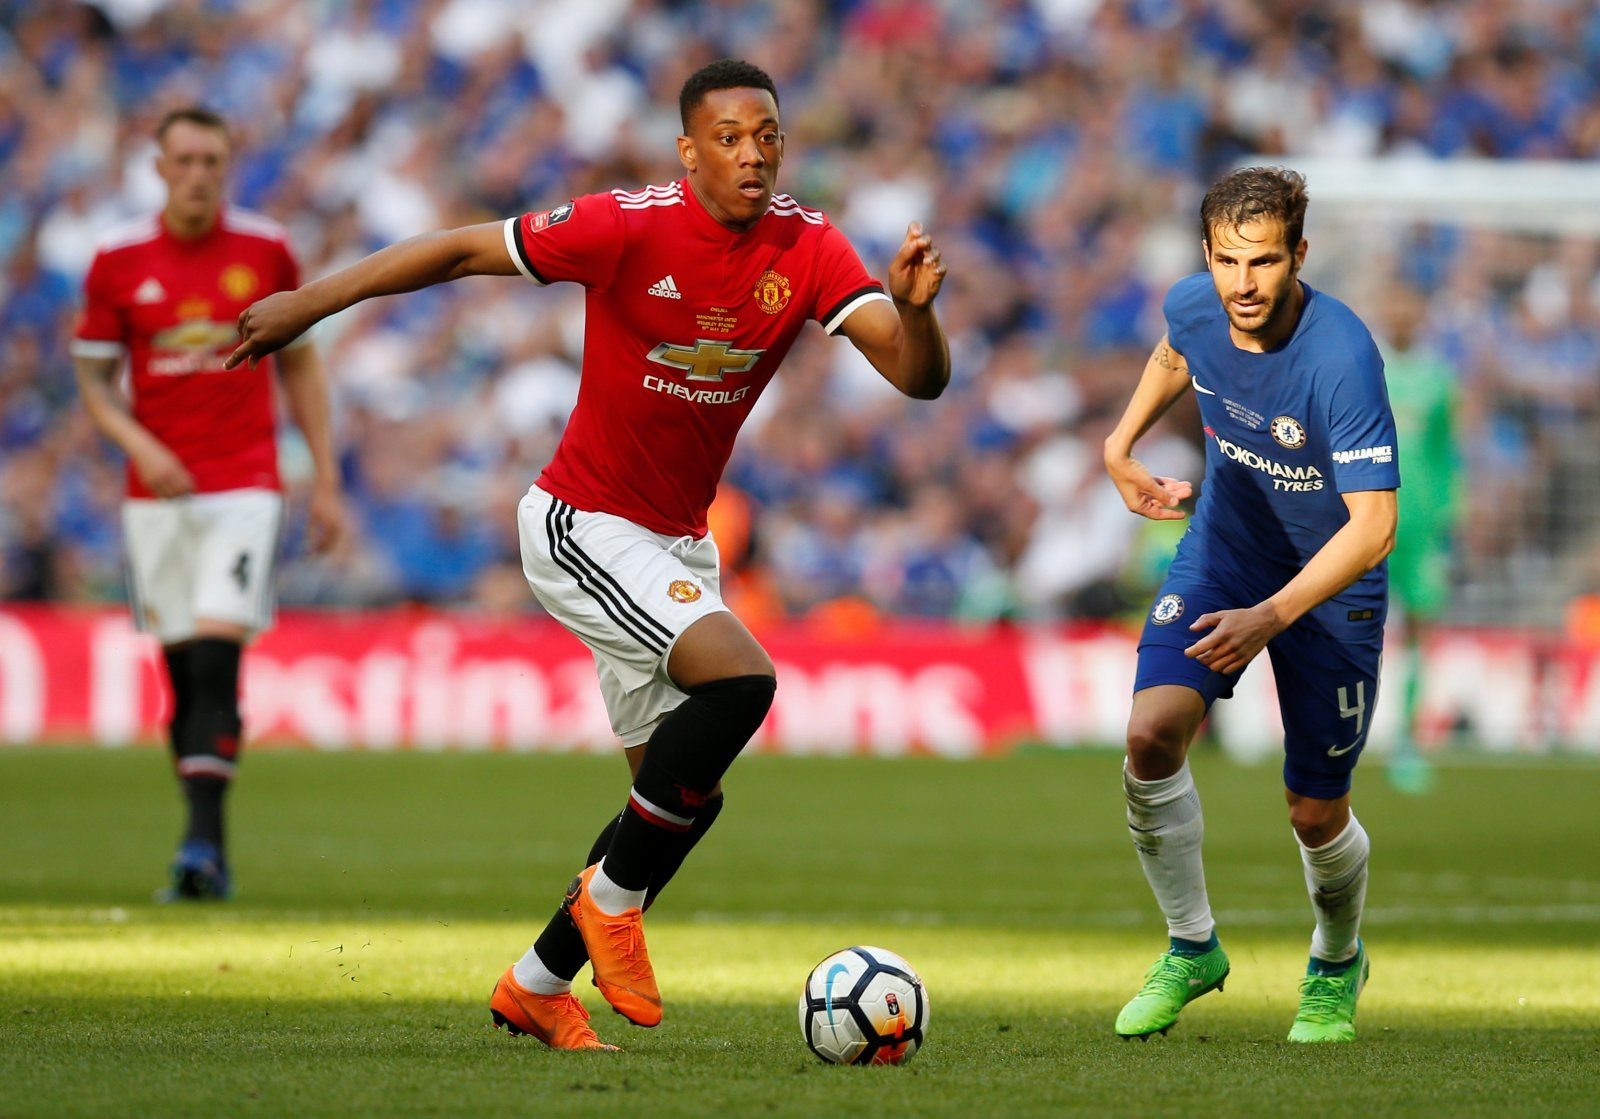 Martial should force his way out of Manchester United this summer